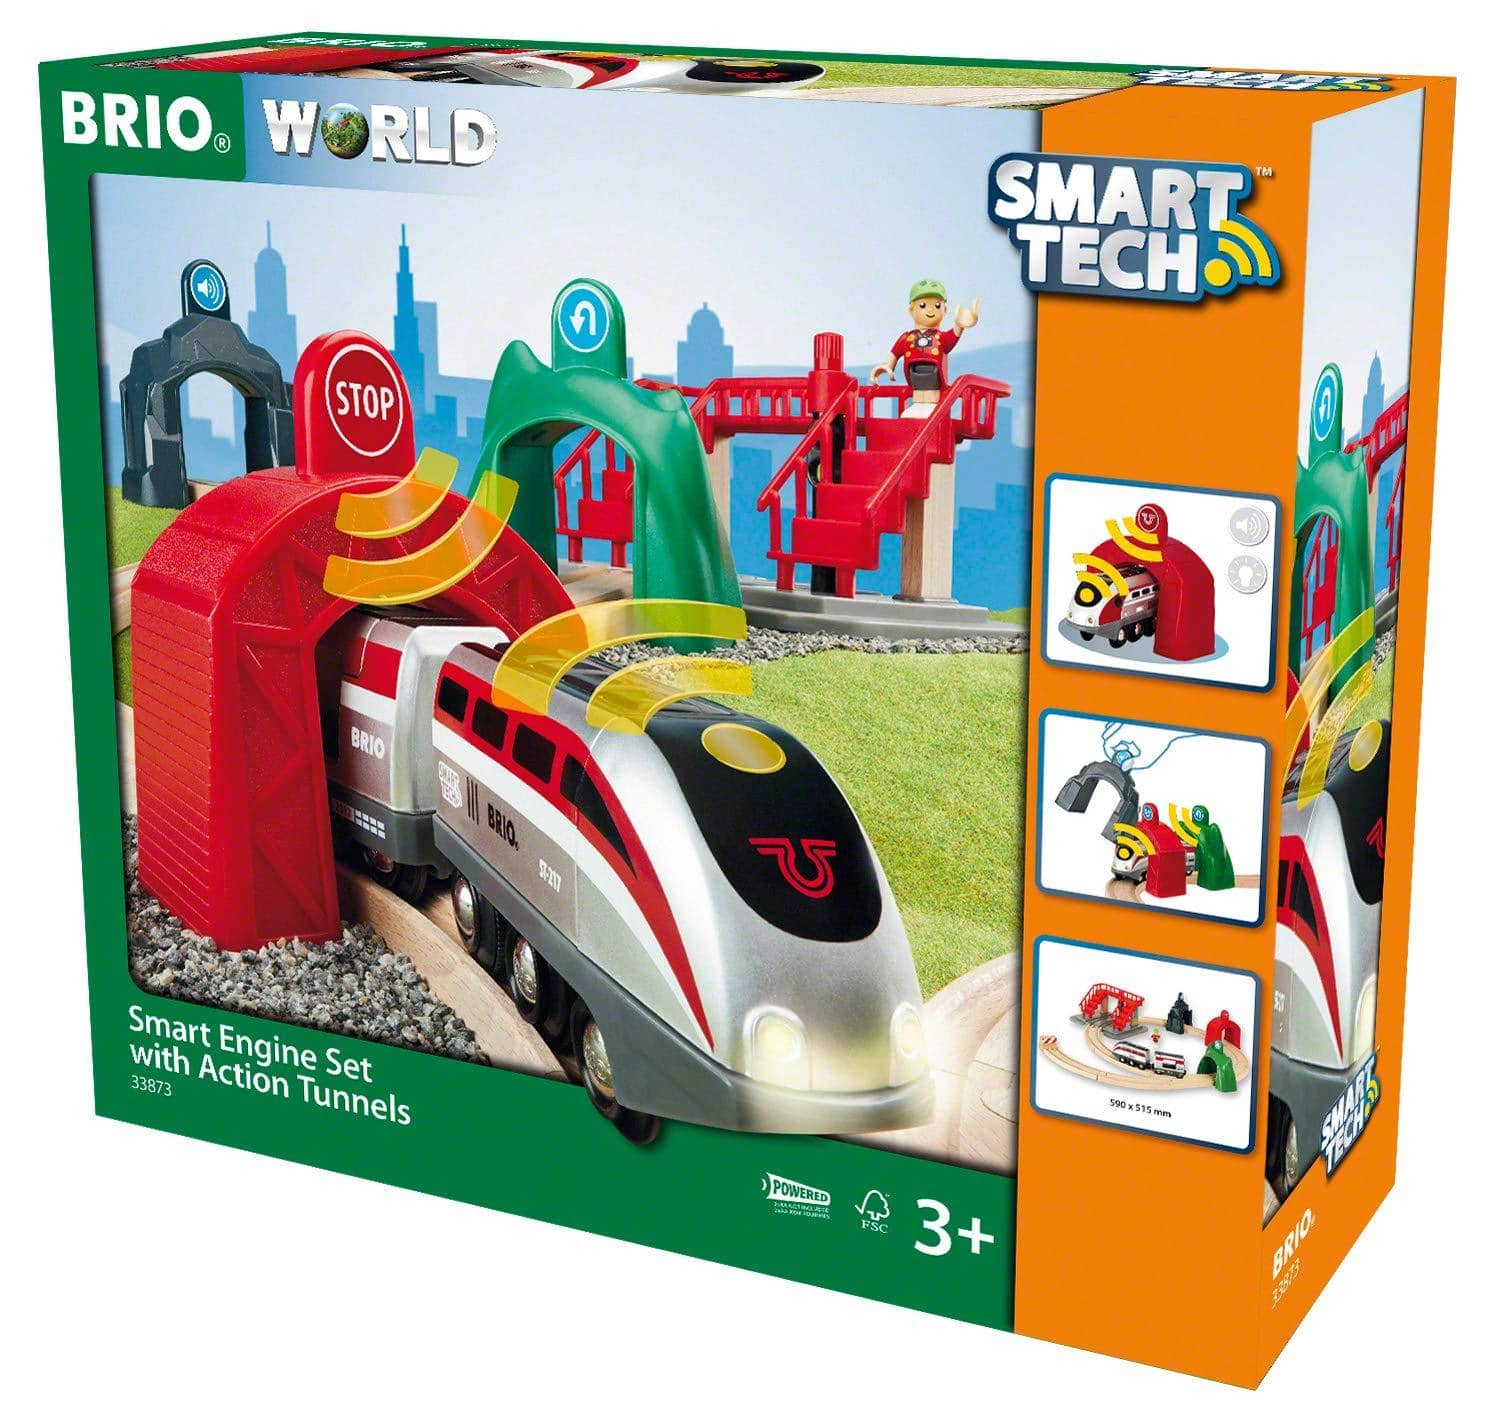 Brio World Smart Tech 33873 - Large Smart Engine Set With Action Tunnels, Includes 17 Pieces, Smart Engine And Tunnels, Wooden Tracks For Wooden Train, Railway-Kidding Around NYC